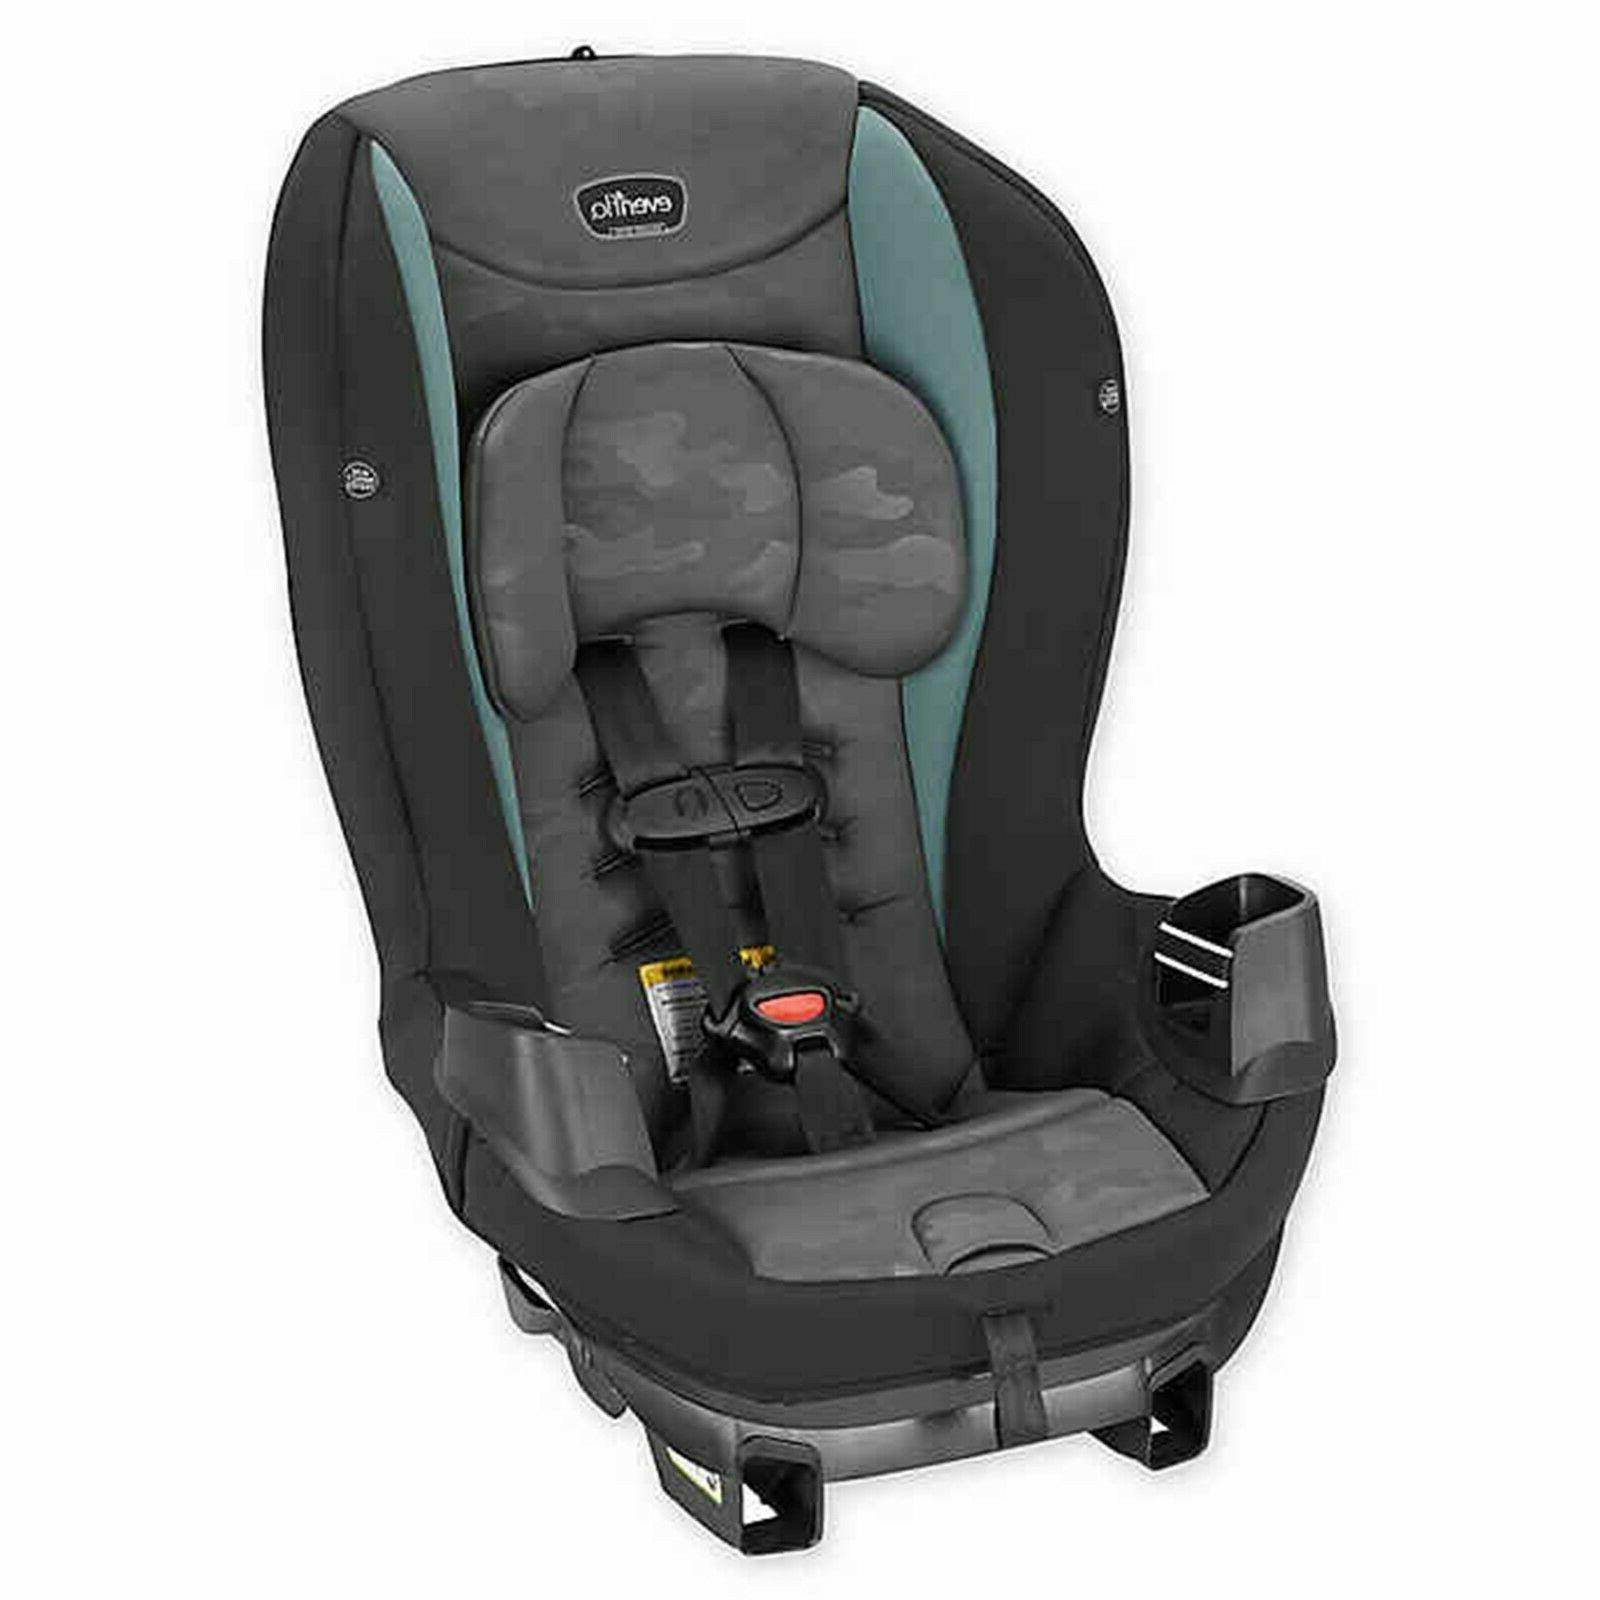 Evenflo Convertible 5-point Adjustable Safety New